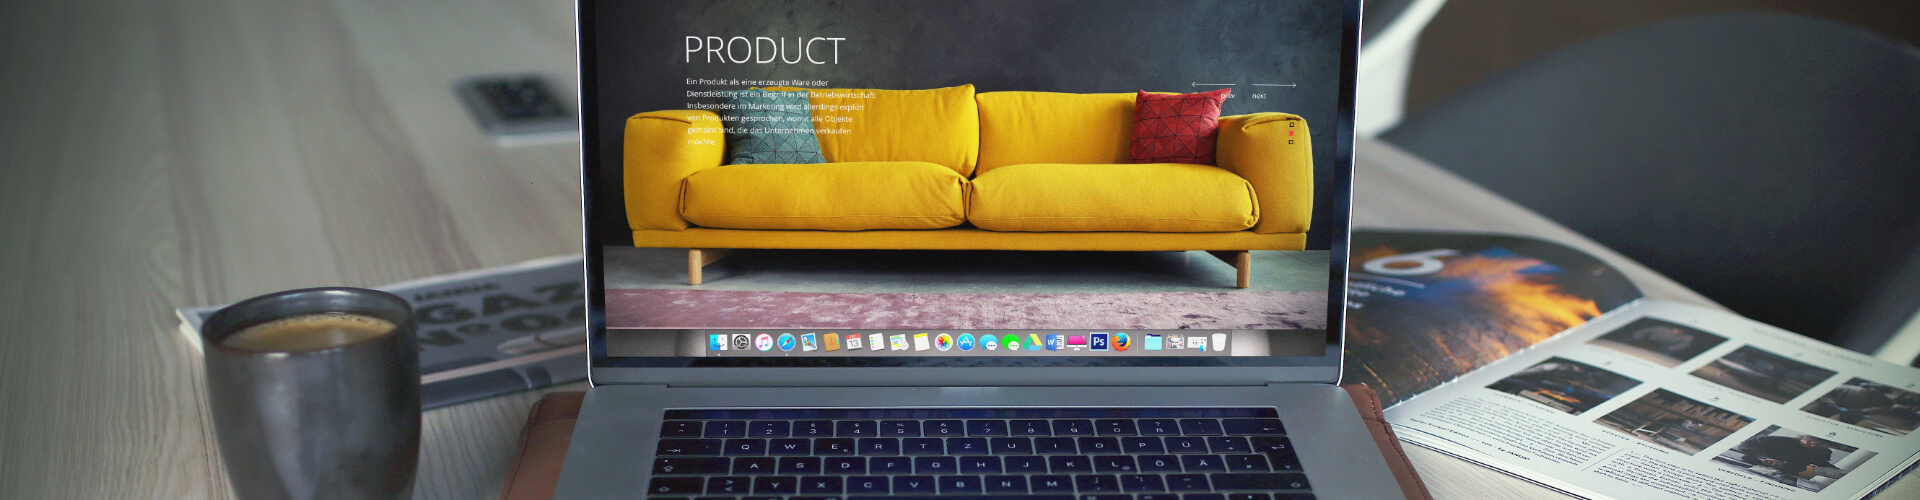 A product website that was translated into German using a website translation can be seen on a laptop.